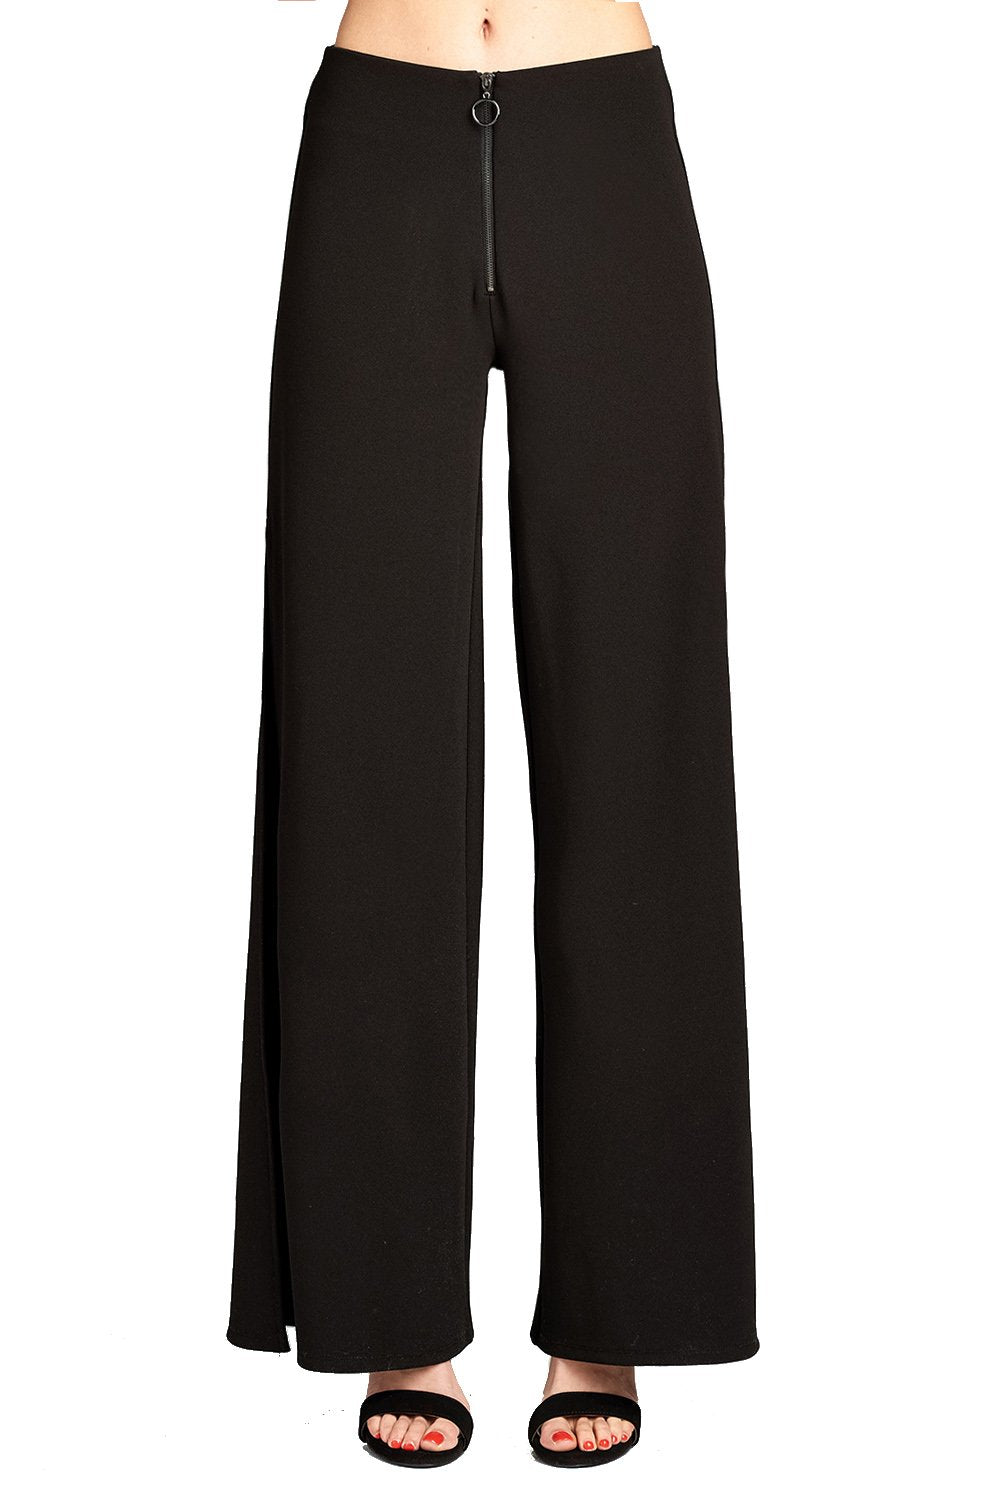 Khanomak Women's Vintage High Waist Zip Front Stretch Crepe Flare Pants